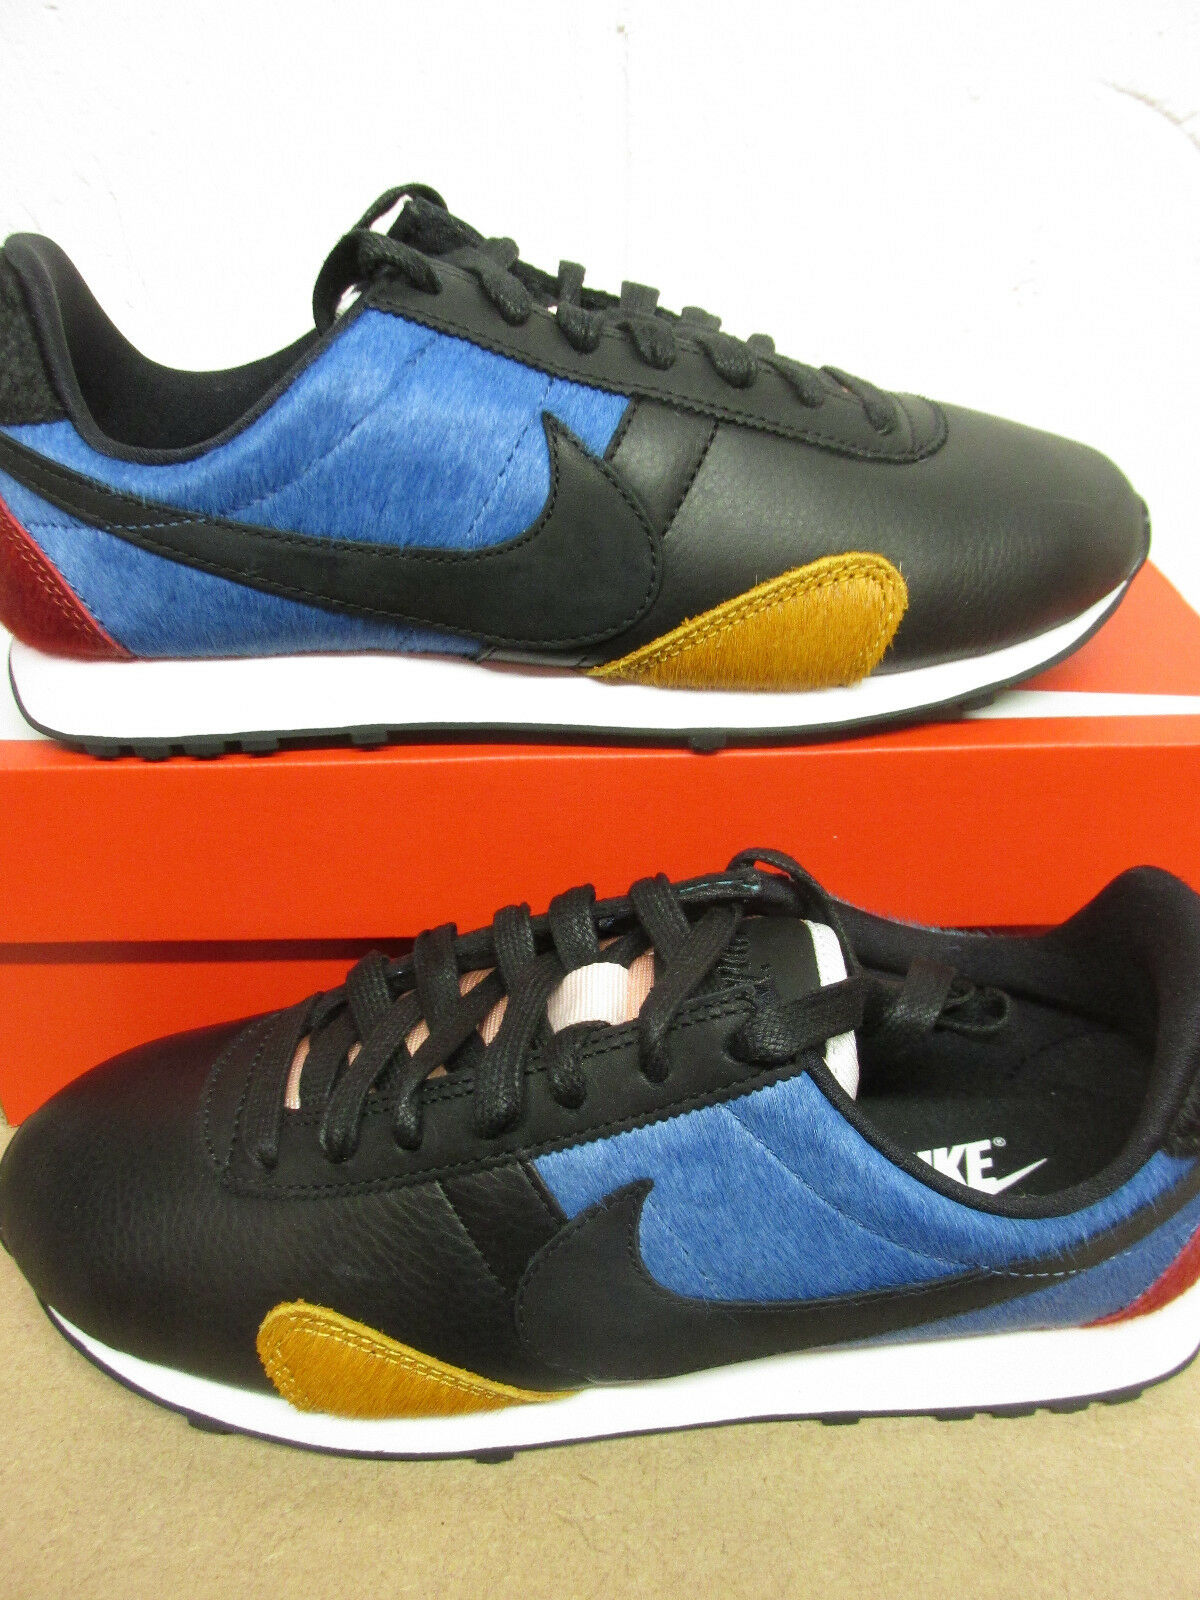 Nike Womens Pre Montreal Racer VNTG PRM Running Trainers 844930 001 Sneakers New shoes for men and women, limited time discount Brand discount